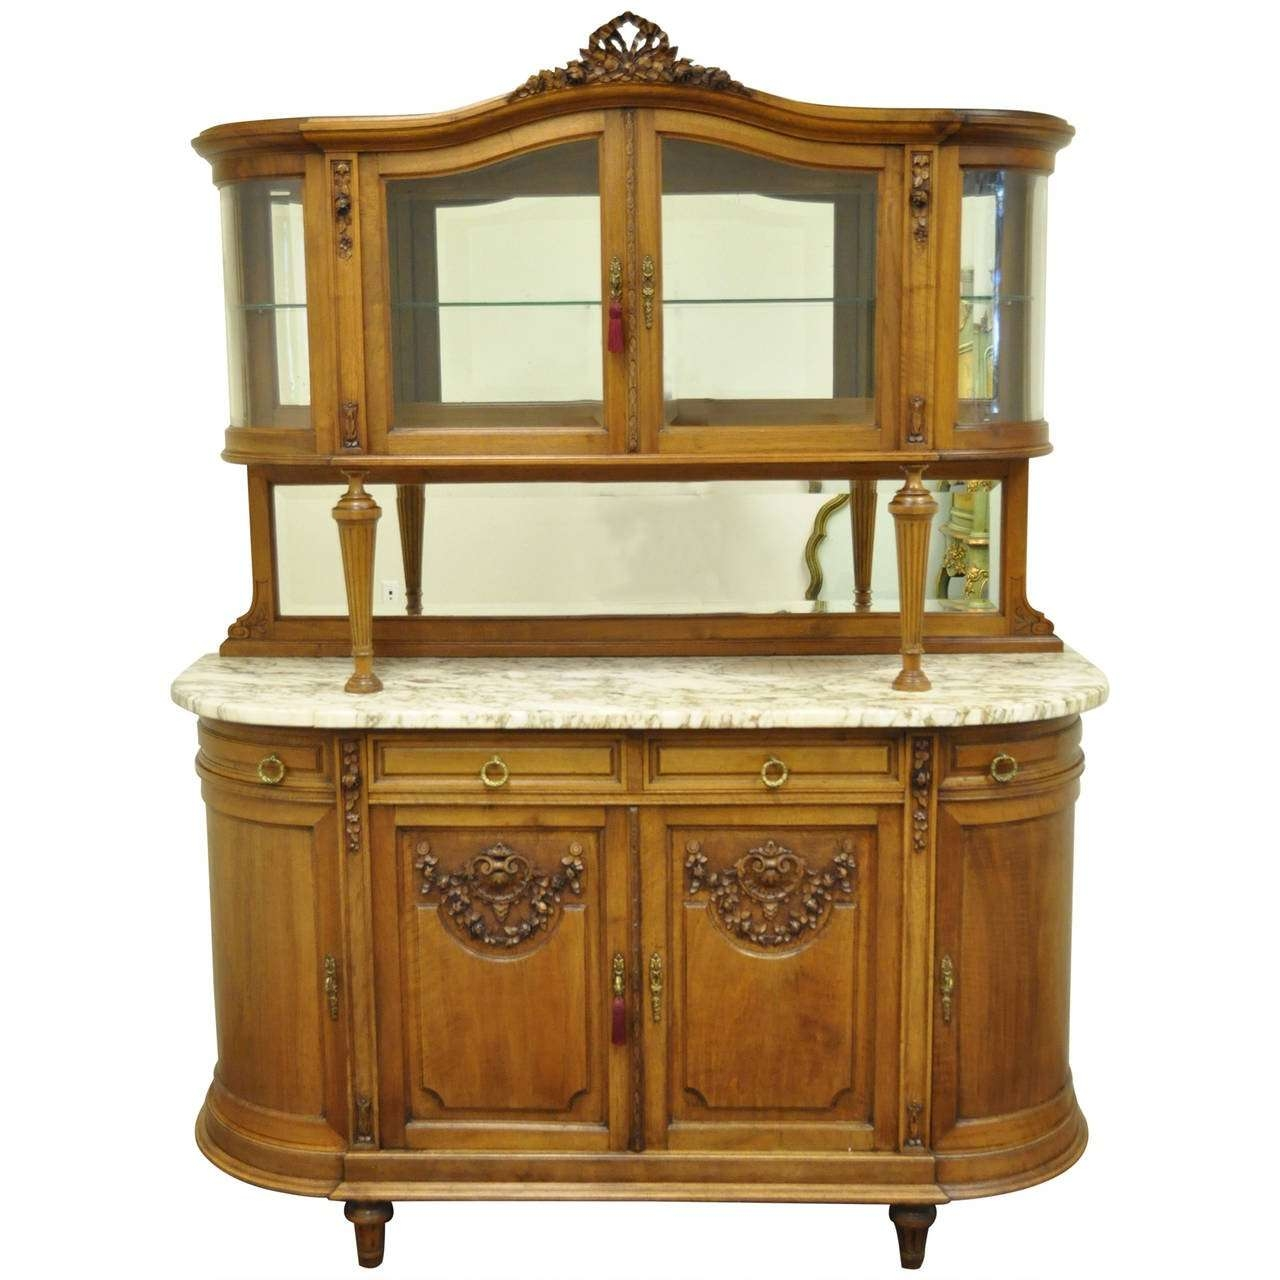 French Louis Xvi Style Marble Top Sideboard Or Curio Cabinet Inside Antique Marble Top Sideboards (View 7 of 20)